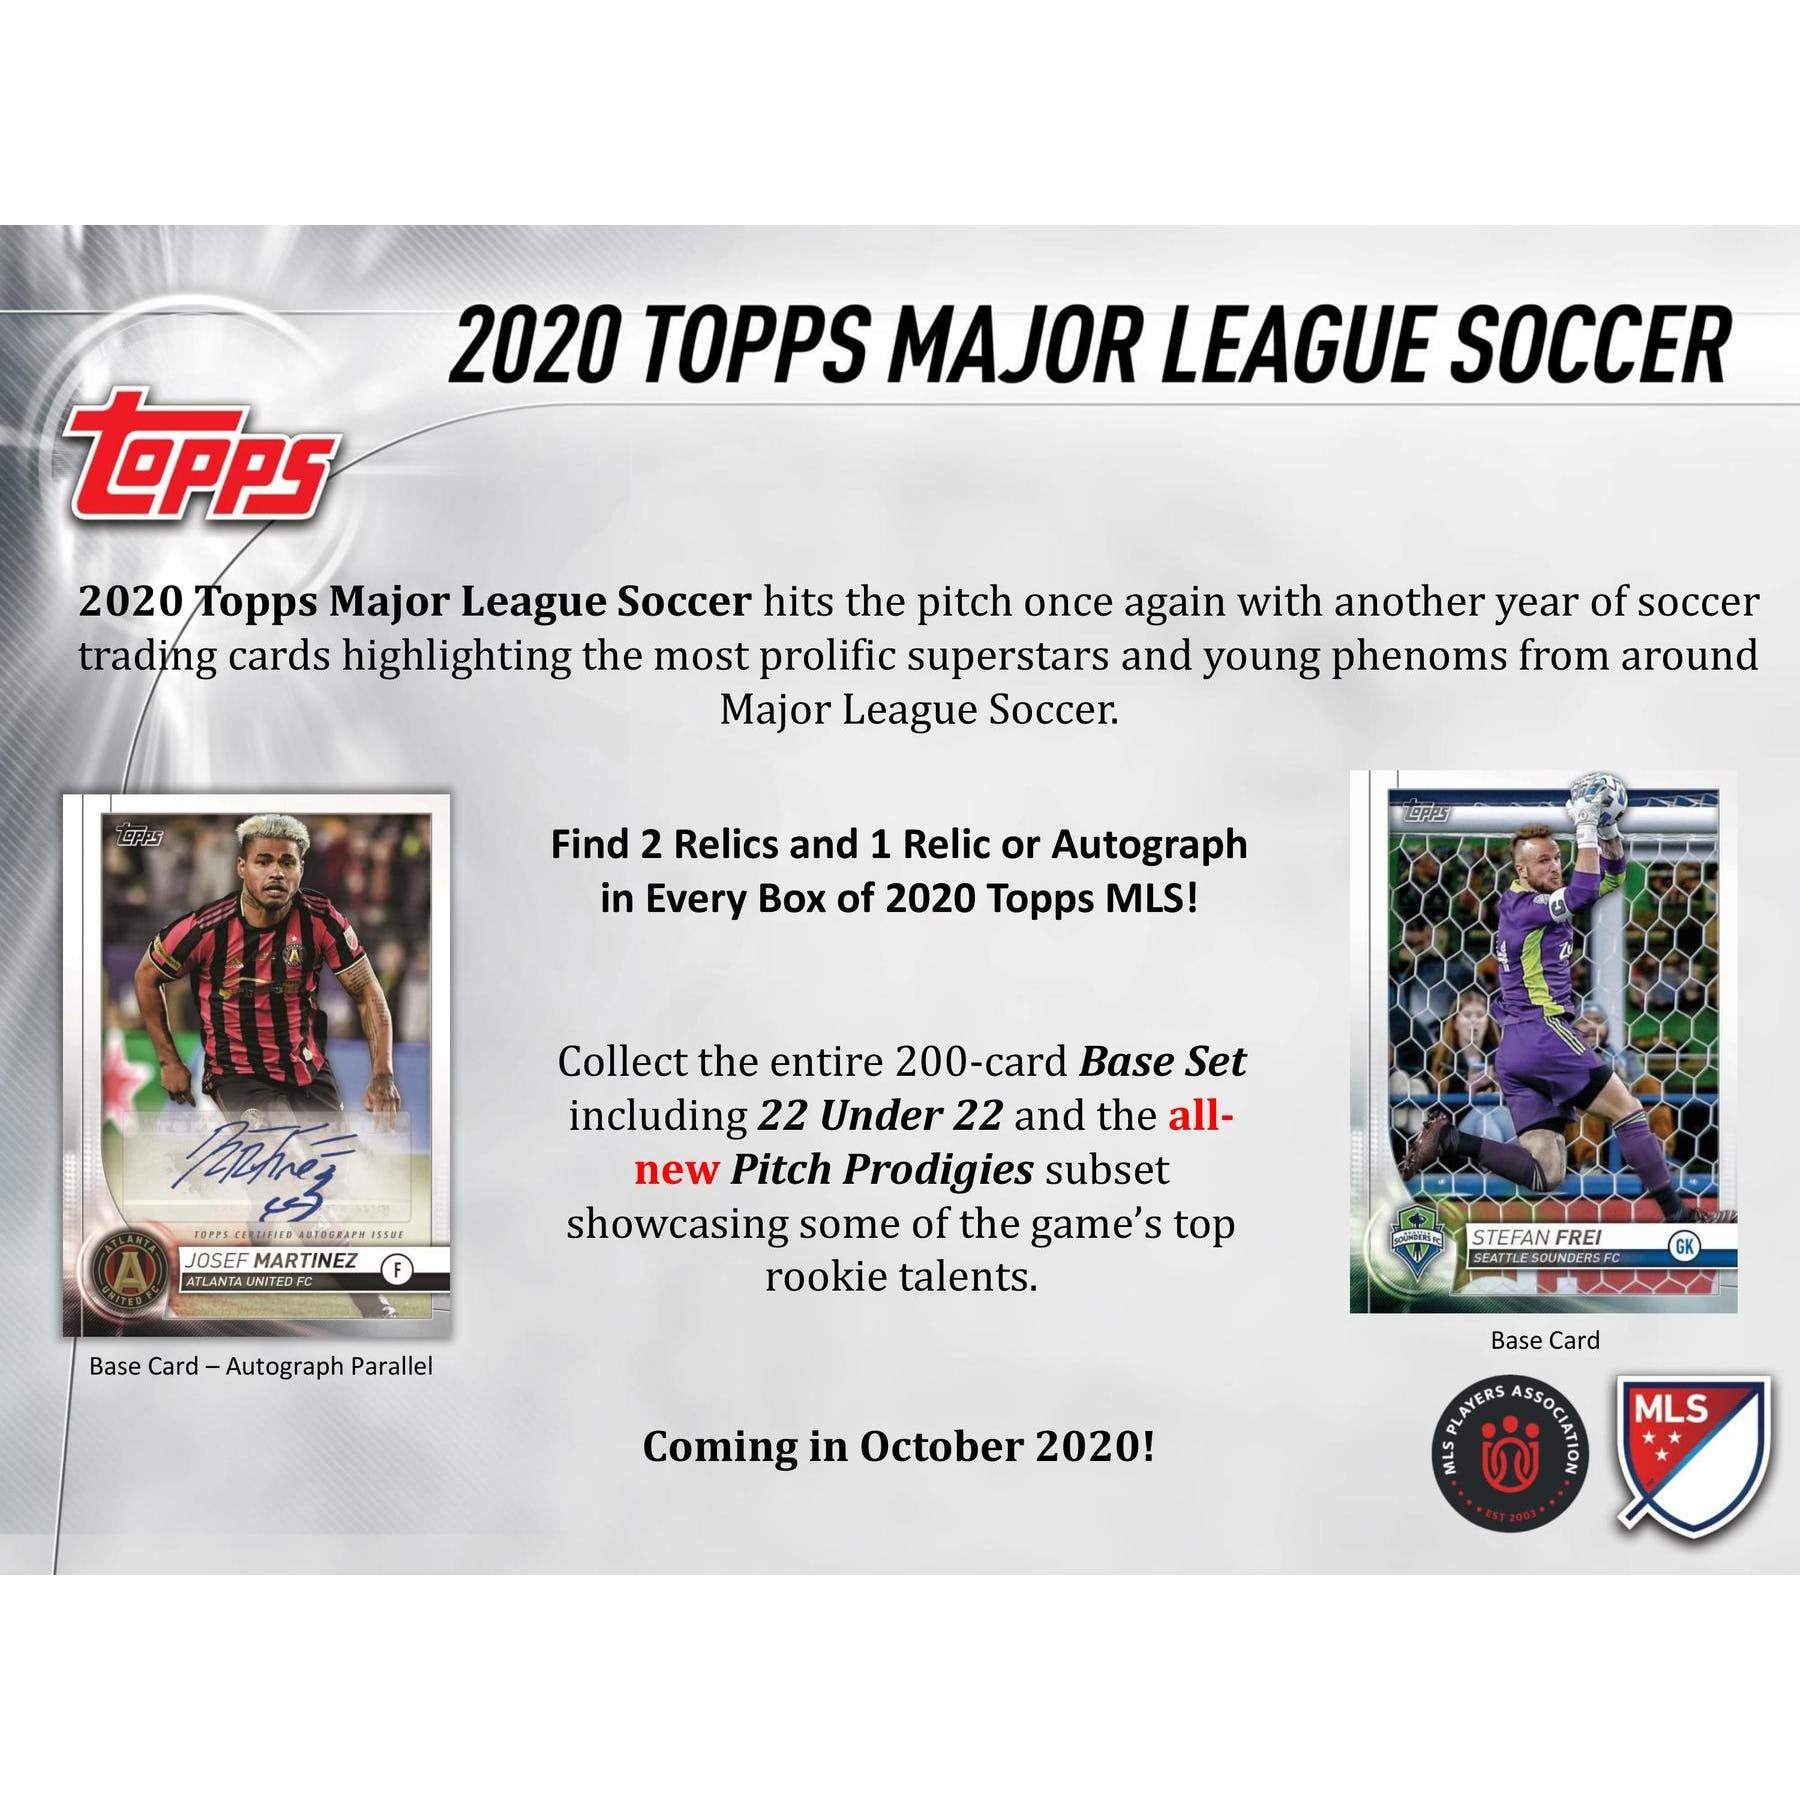 2020 Topps Mls Major League Soccer Hobby Box Presell Da Card World